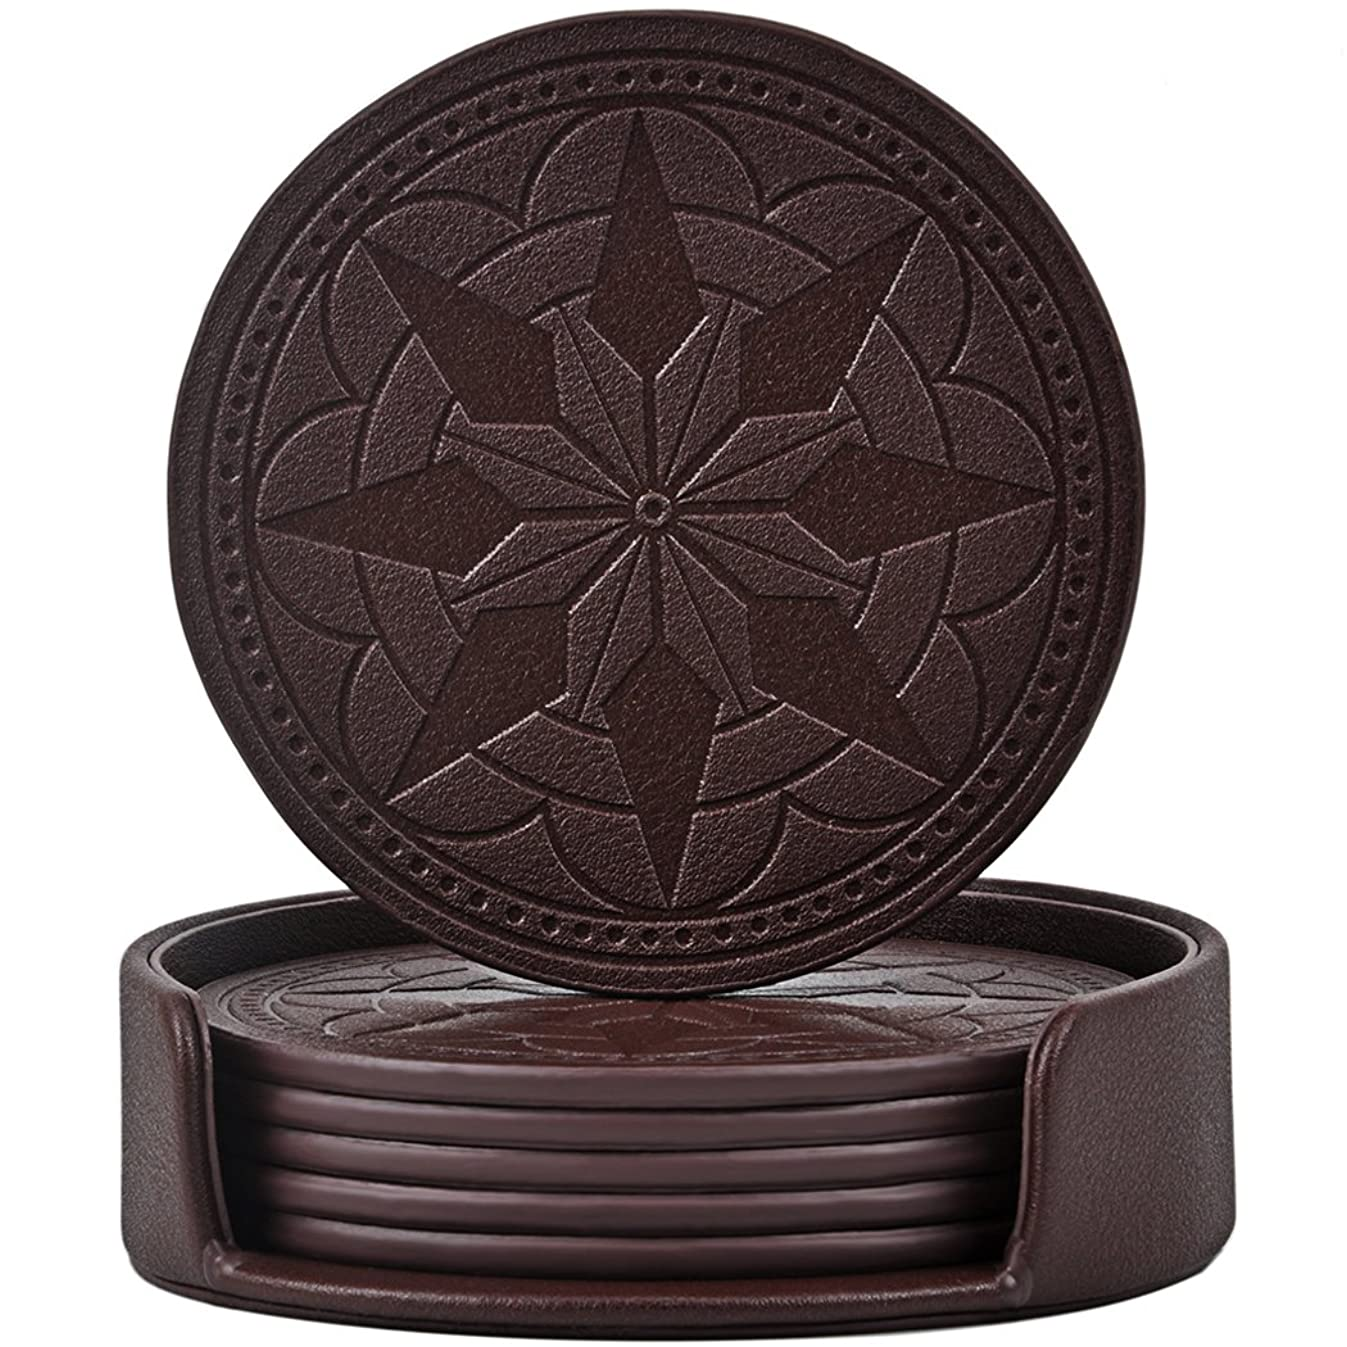 365park Coasters,PU Leather Coasters for Drinks Set of 6 with Holder-Protect Your Furniture from Stains,Coffee